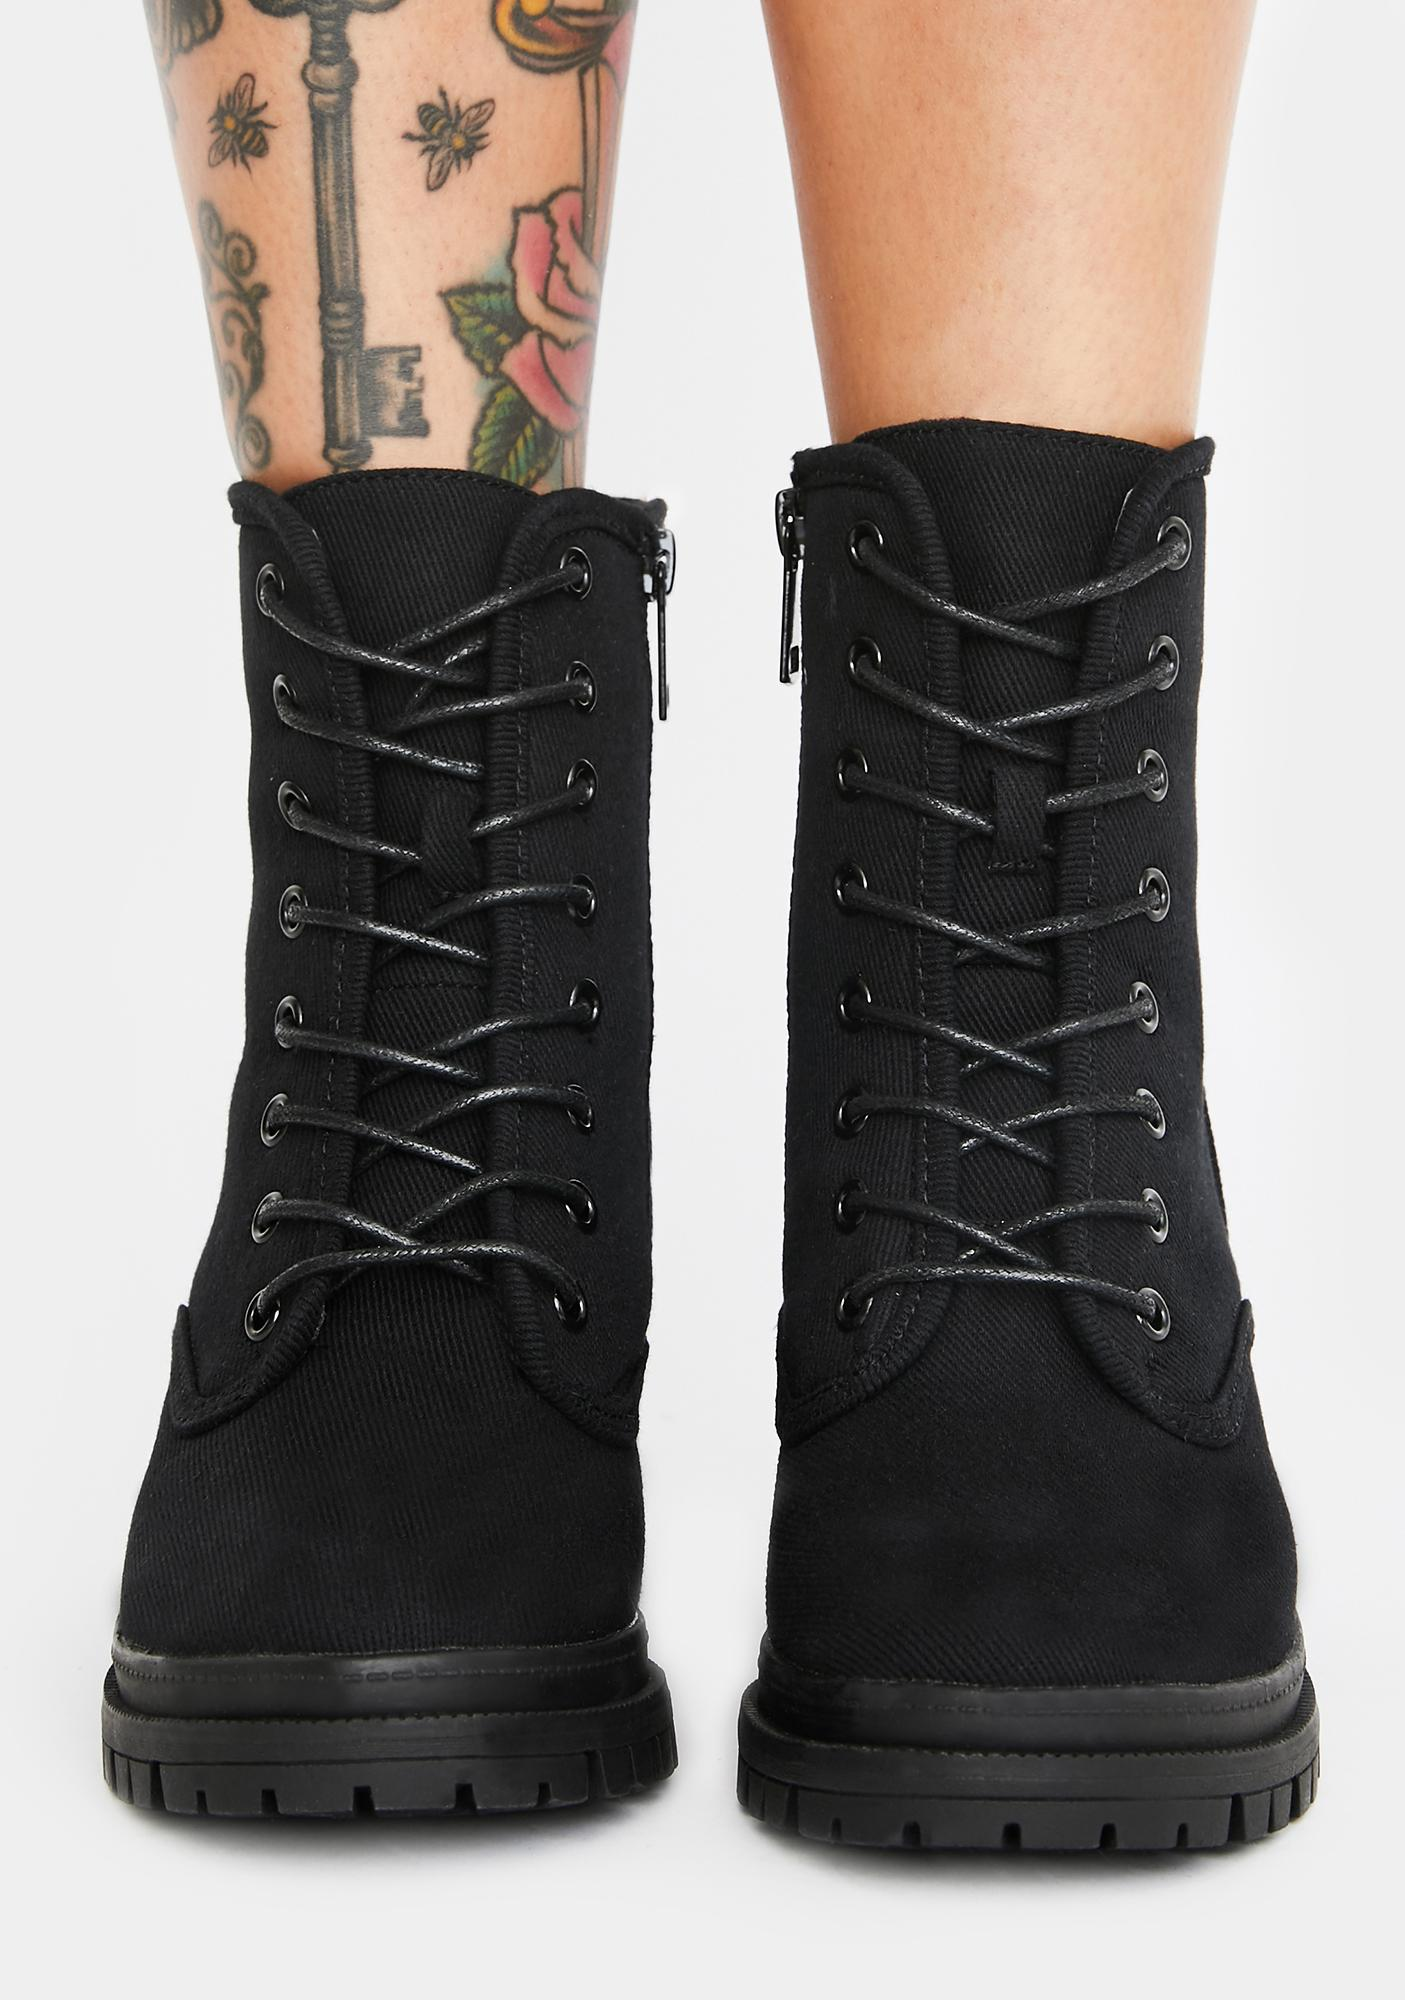 Sly Tricks Combat Boots